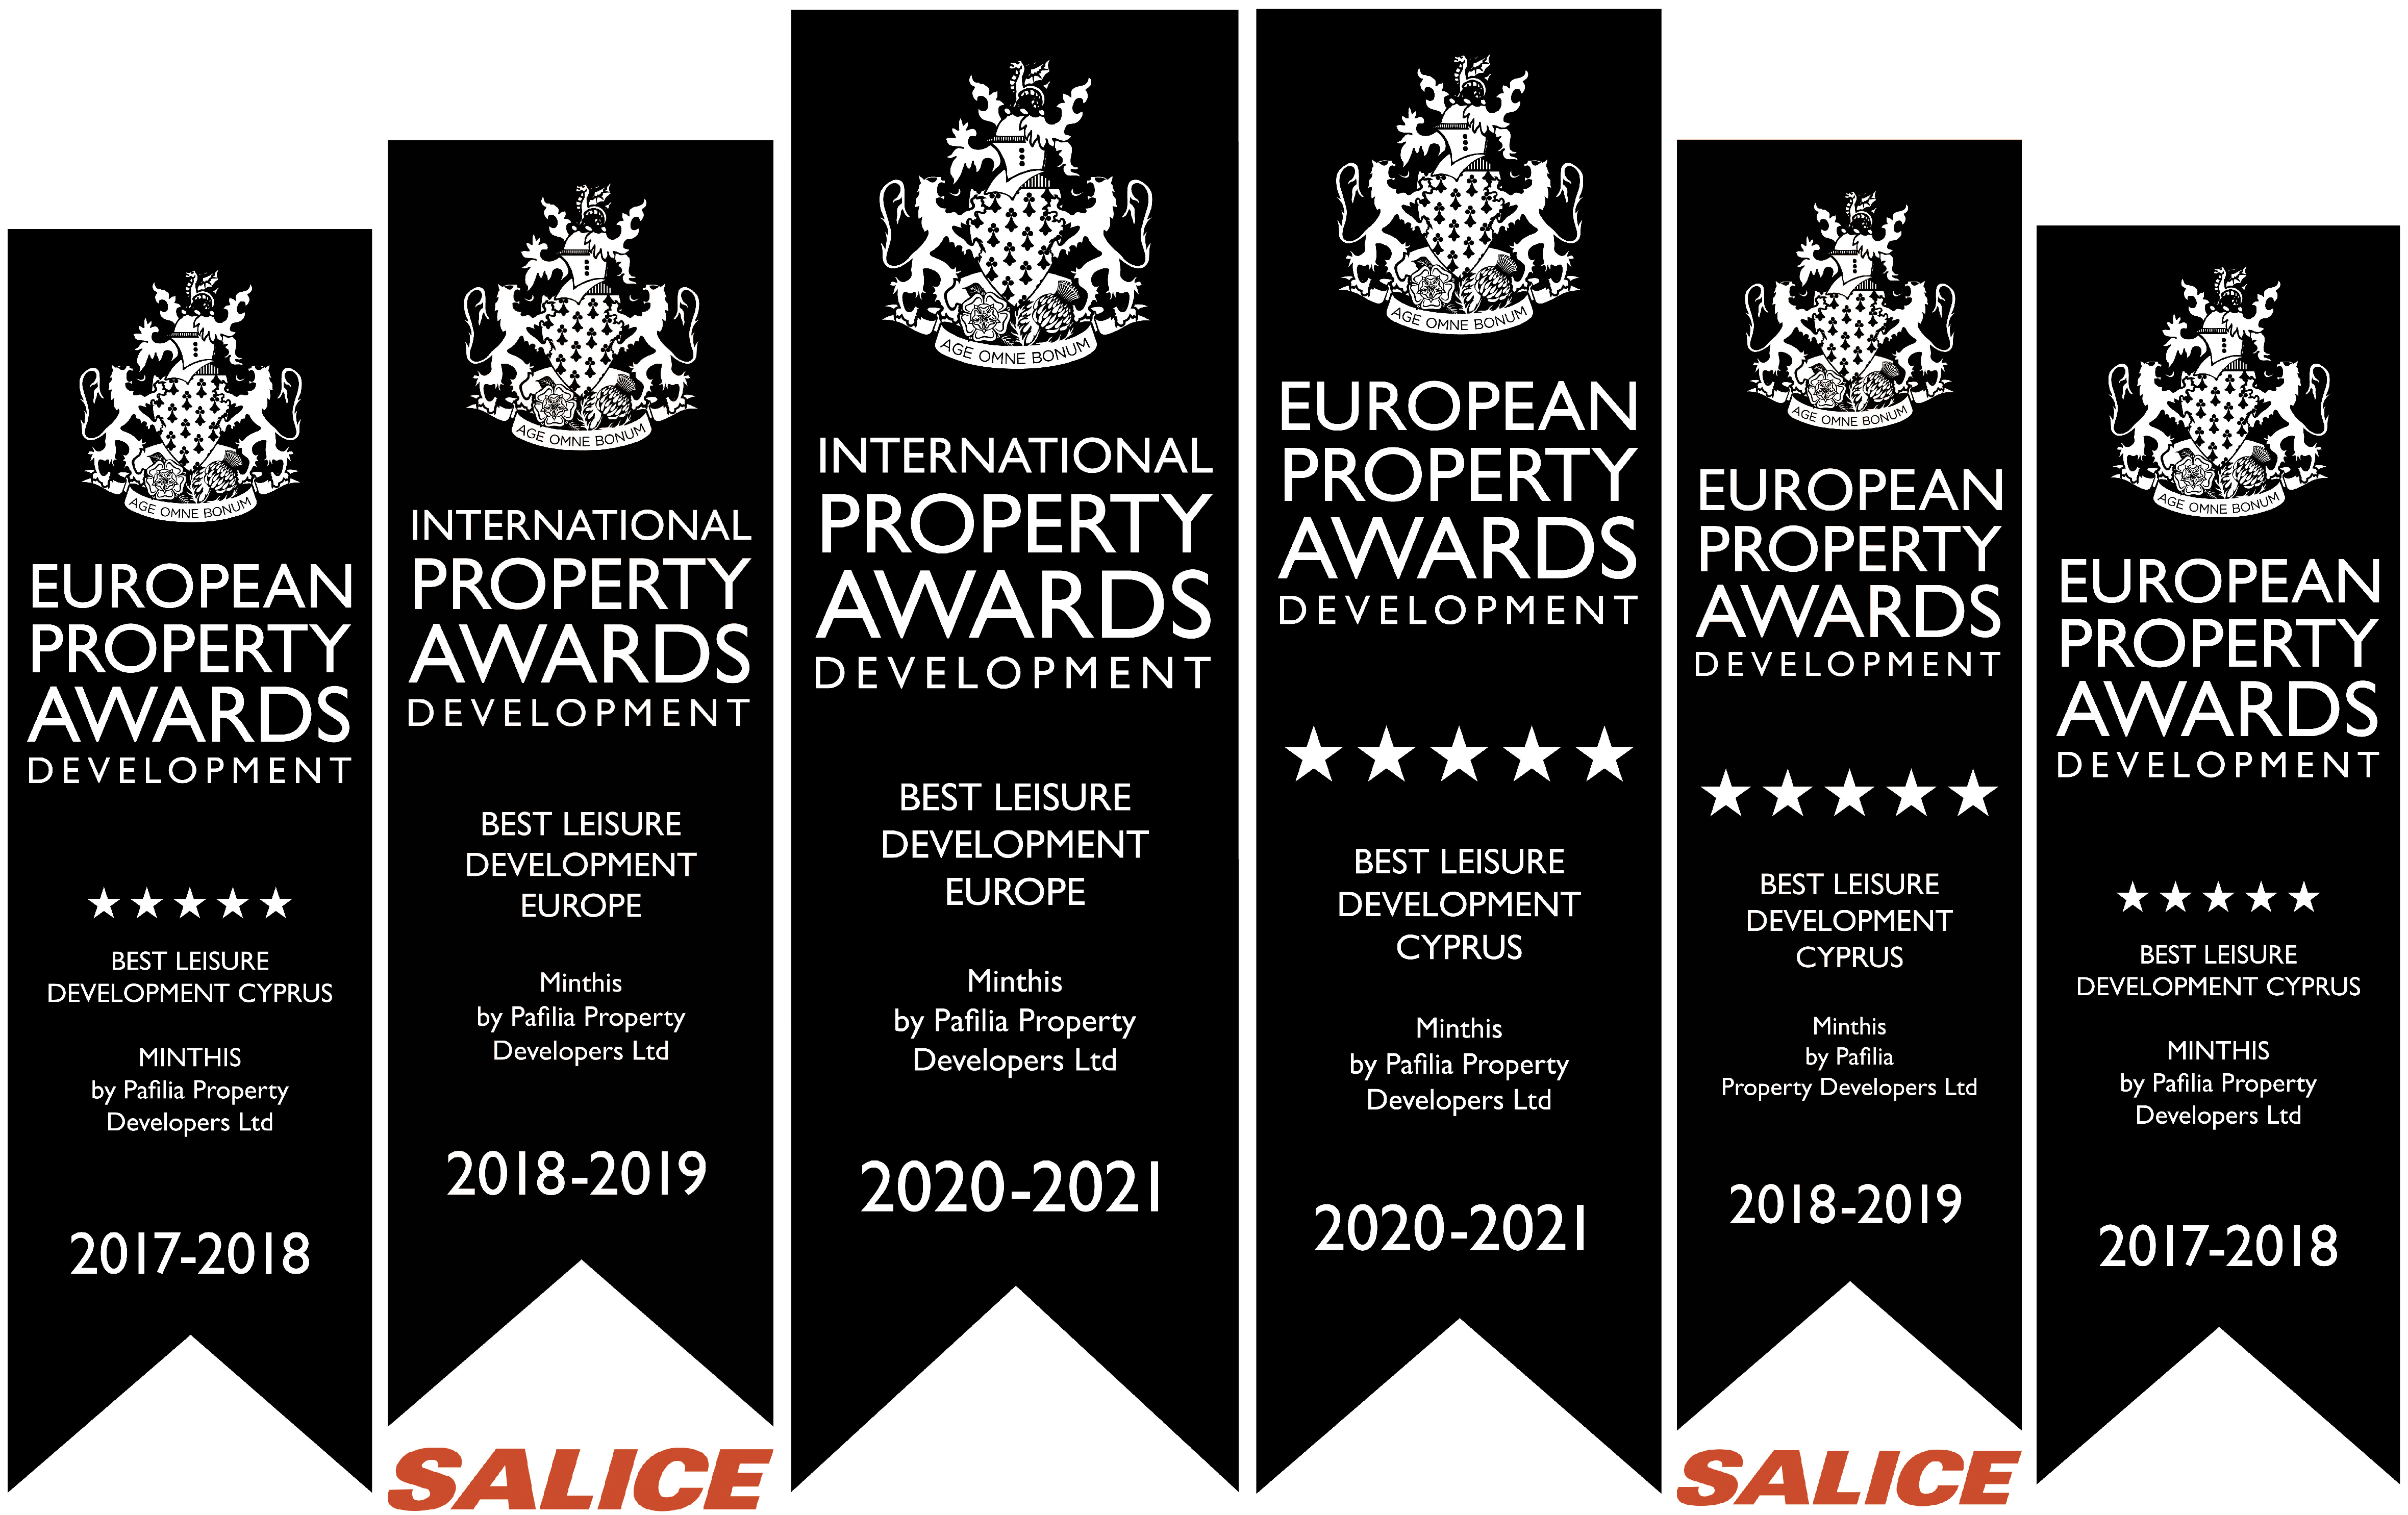 Officially the Best Leisure Development in Europe!